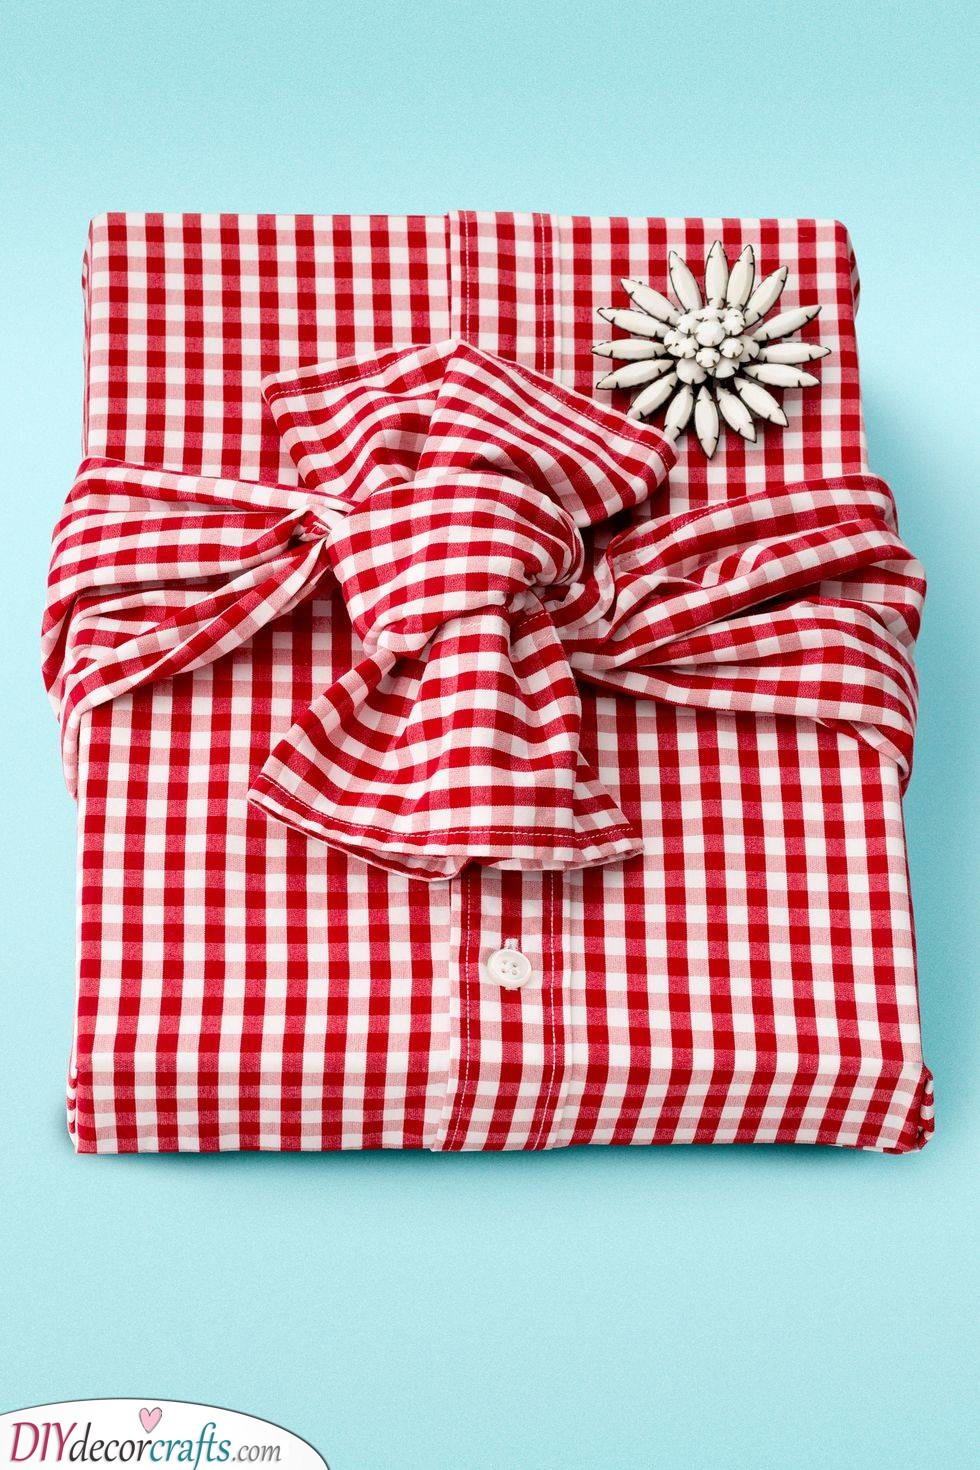 Wrapped in Fabric - Creative Christmas Wrapping Ideas